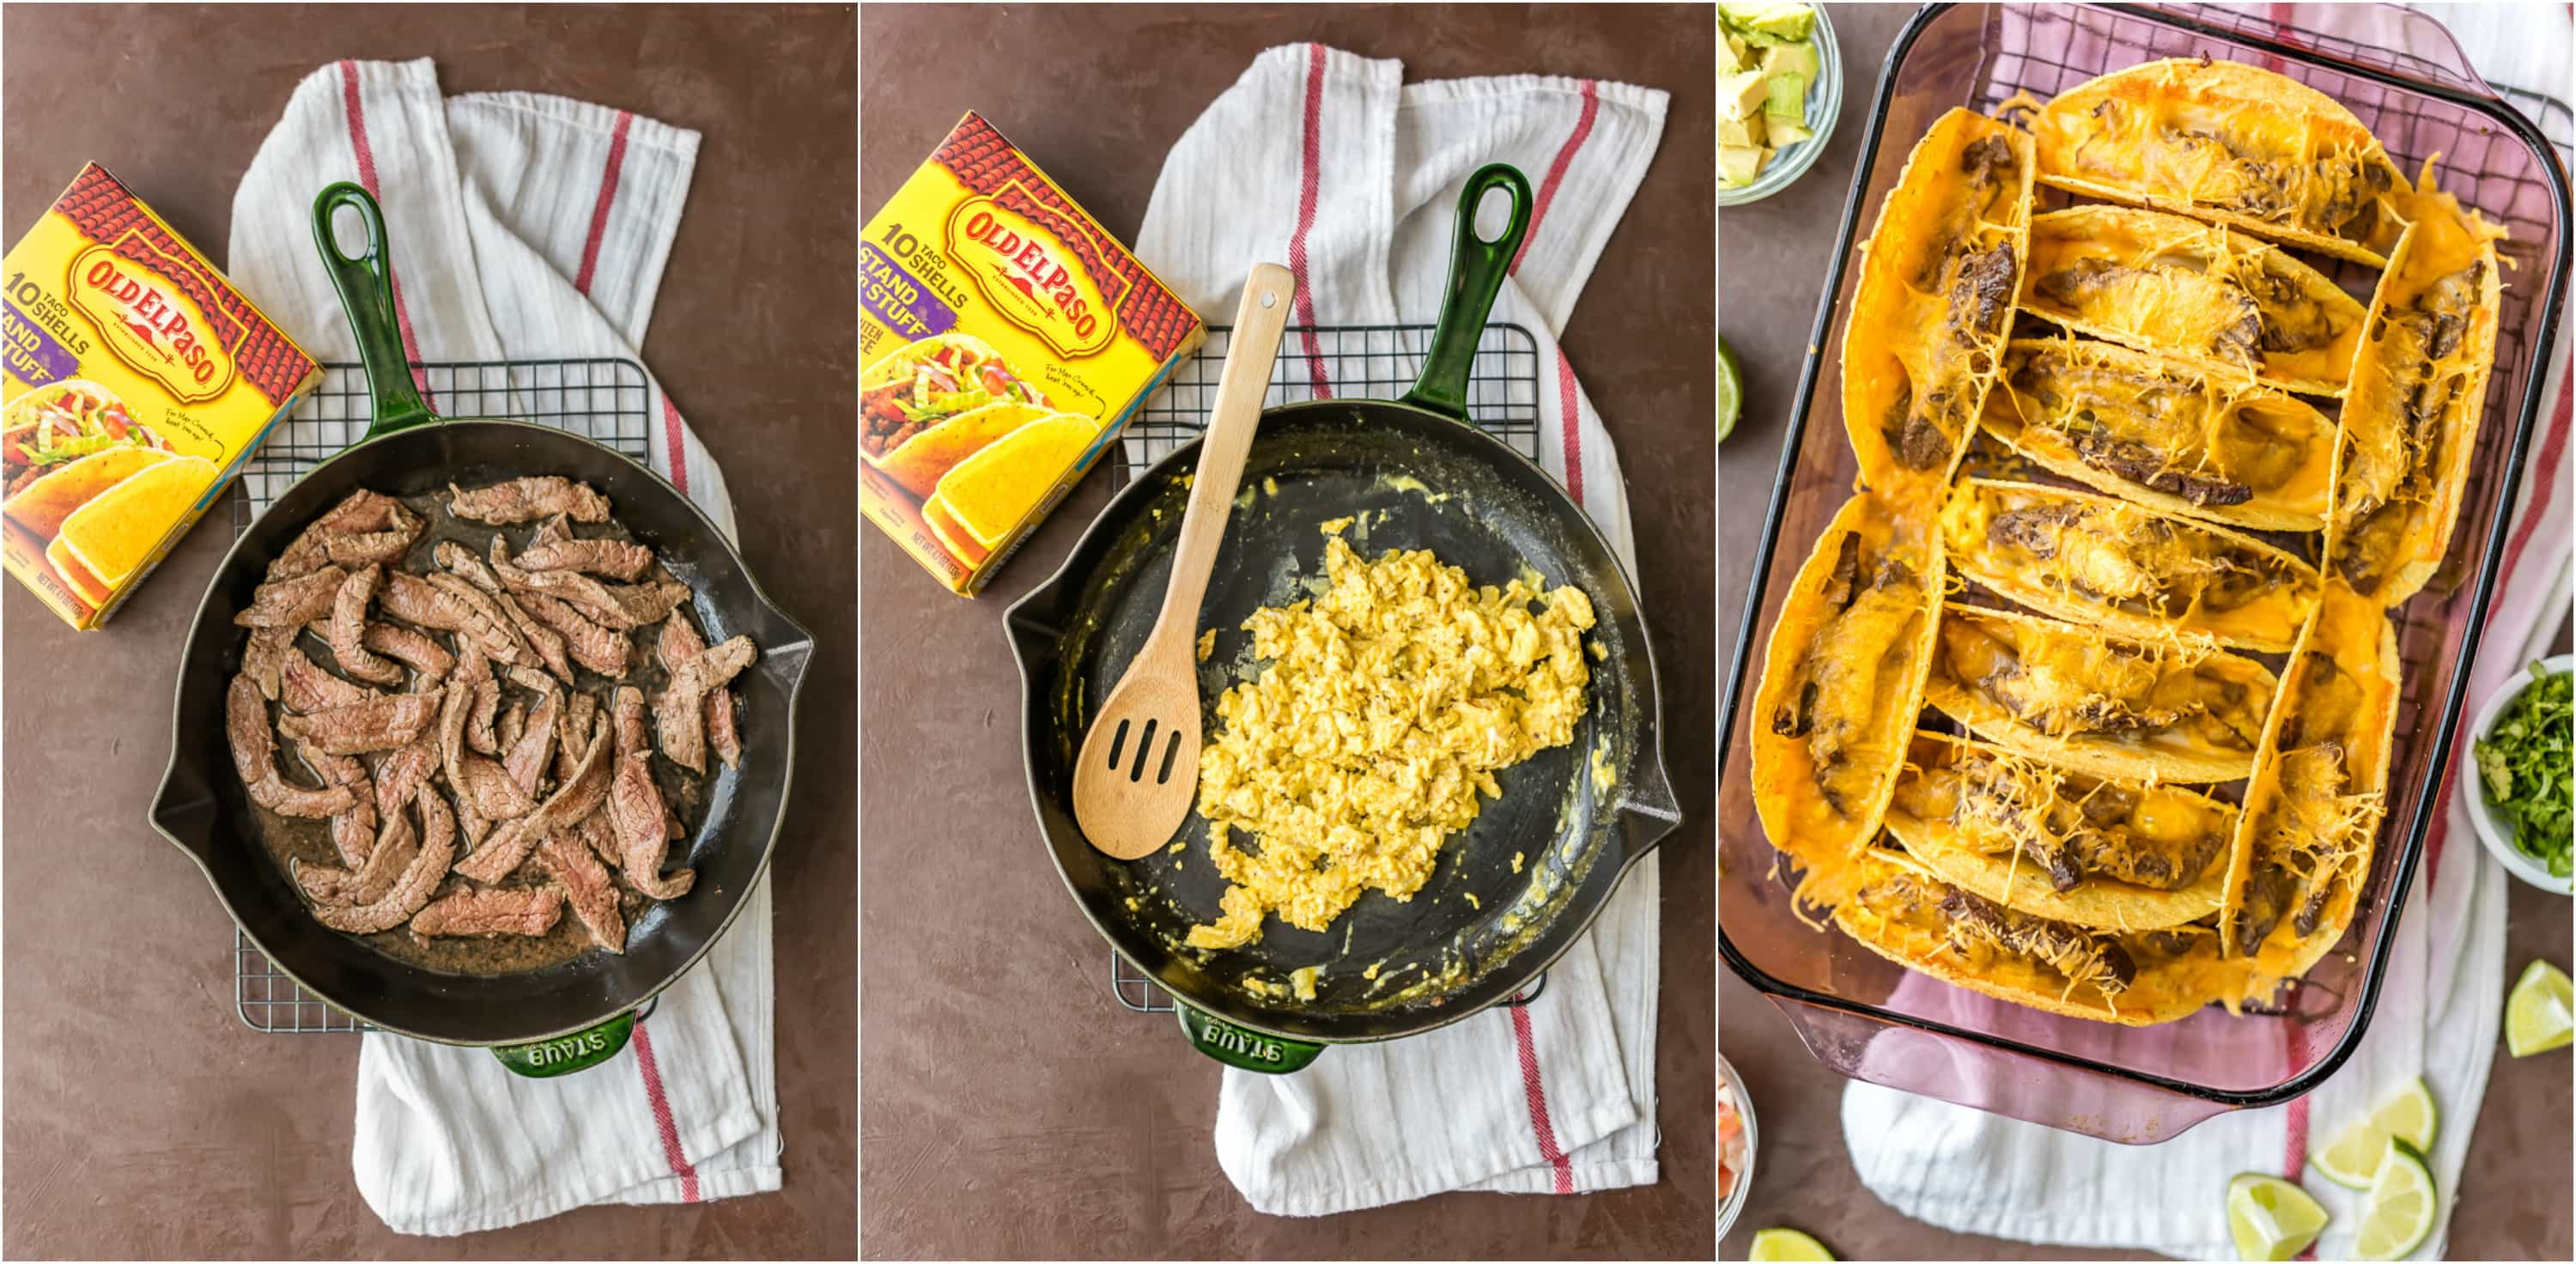 Baked Steak and Eggs Breakfast Tacos are perfect for a crowd! Baked Tacos are super easy, melty, cheesy, and delicious! Just the right amount of spice. A FAMILY FAVORITE!